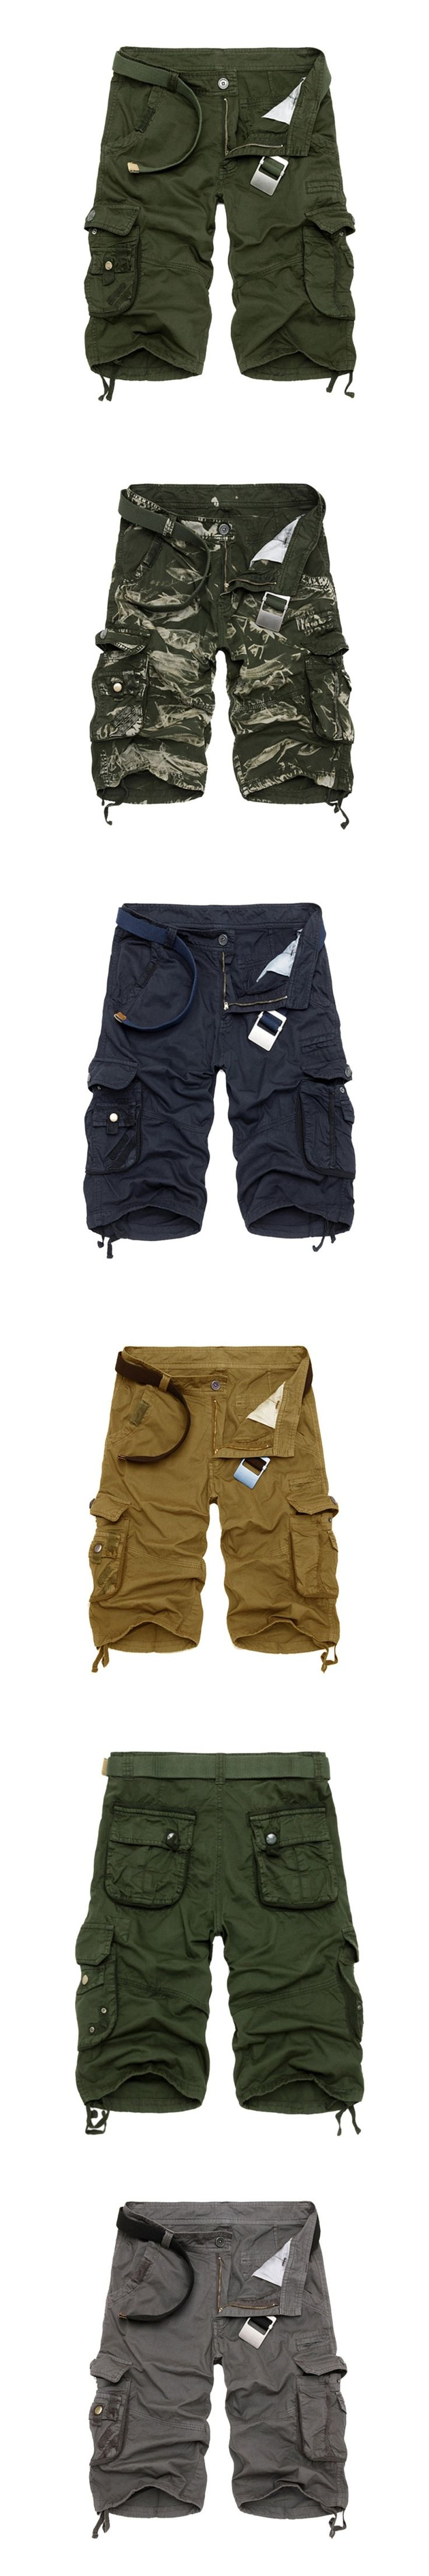 2017 Cargo Shorts Men Casual Camouflage Summer Clothing Cotton Male Fashion Army Work Shorts Men  2017